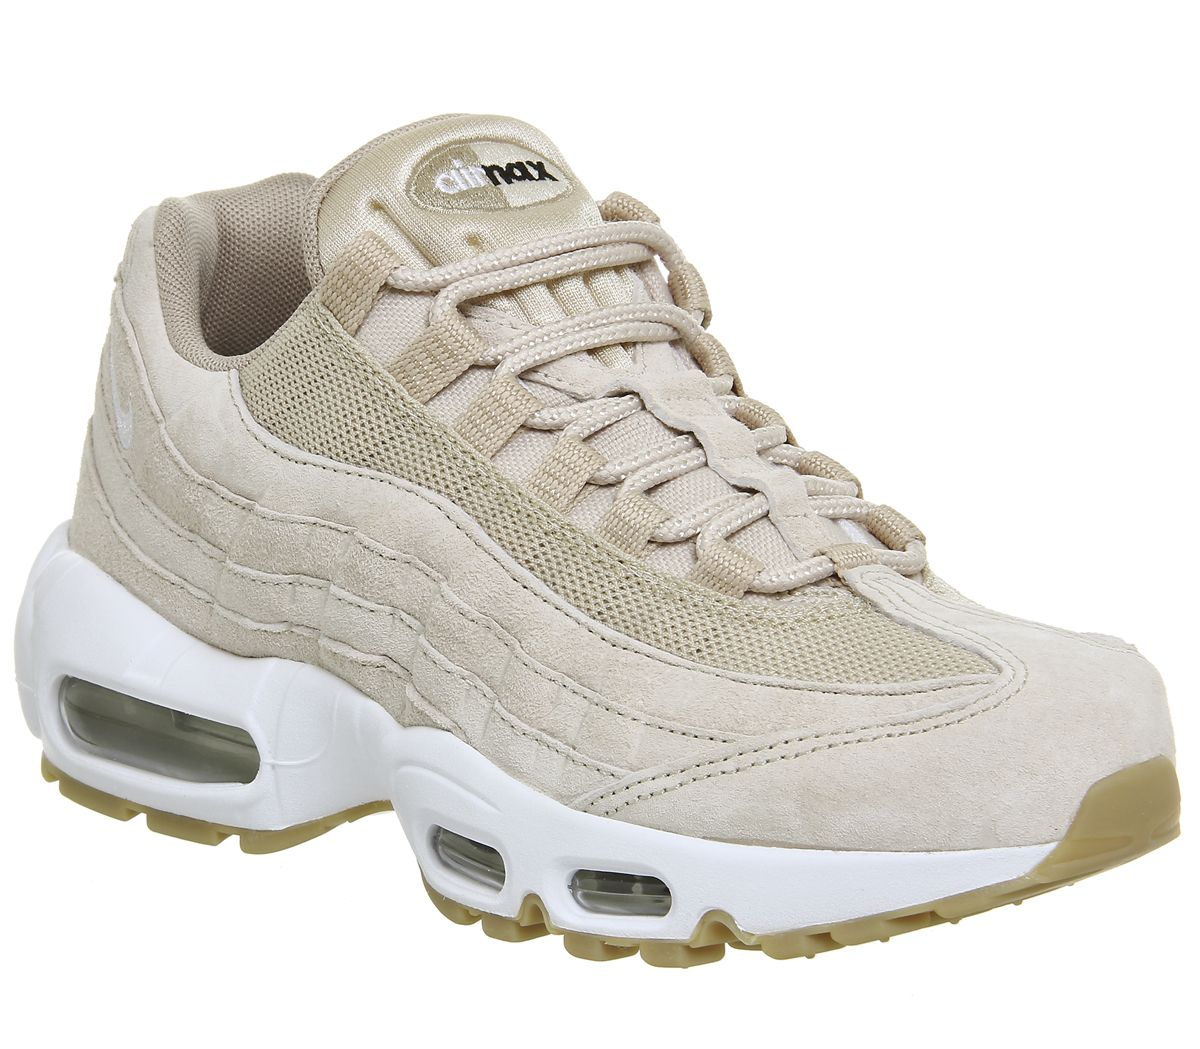 big sale ea28c 59785 Nike Air Max 95 Oatmeal White - Hers trainers